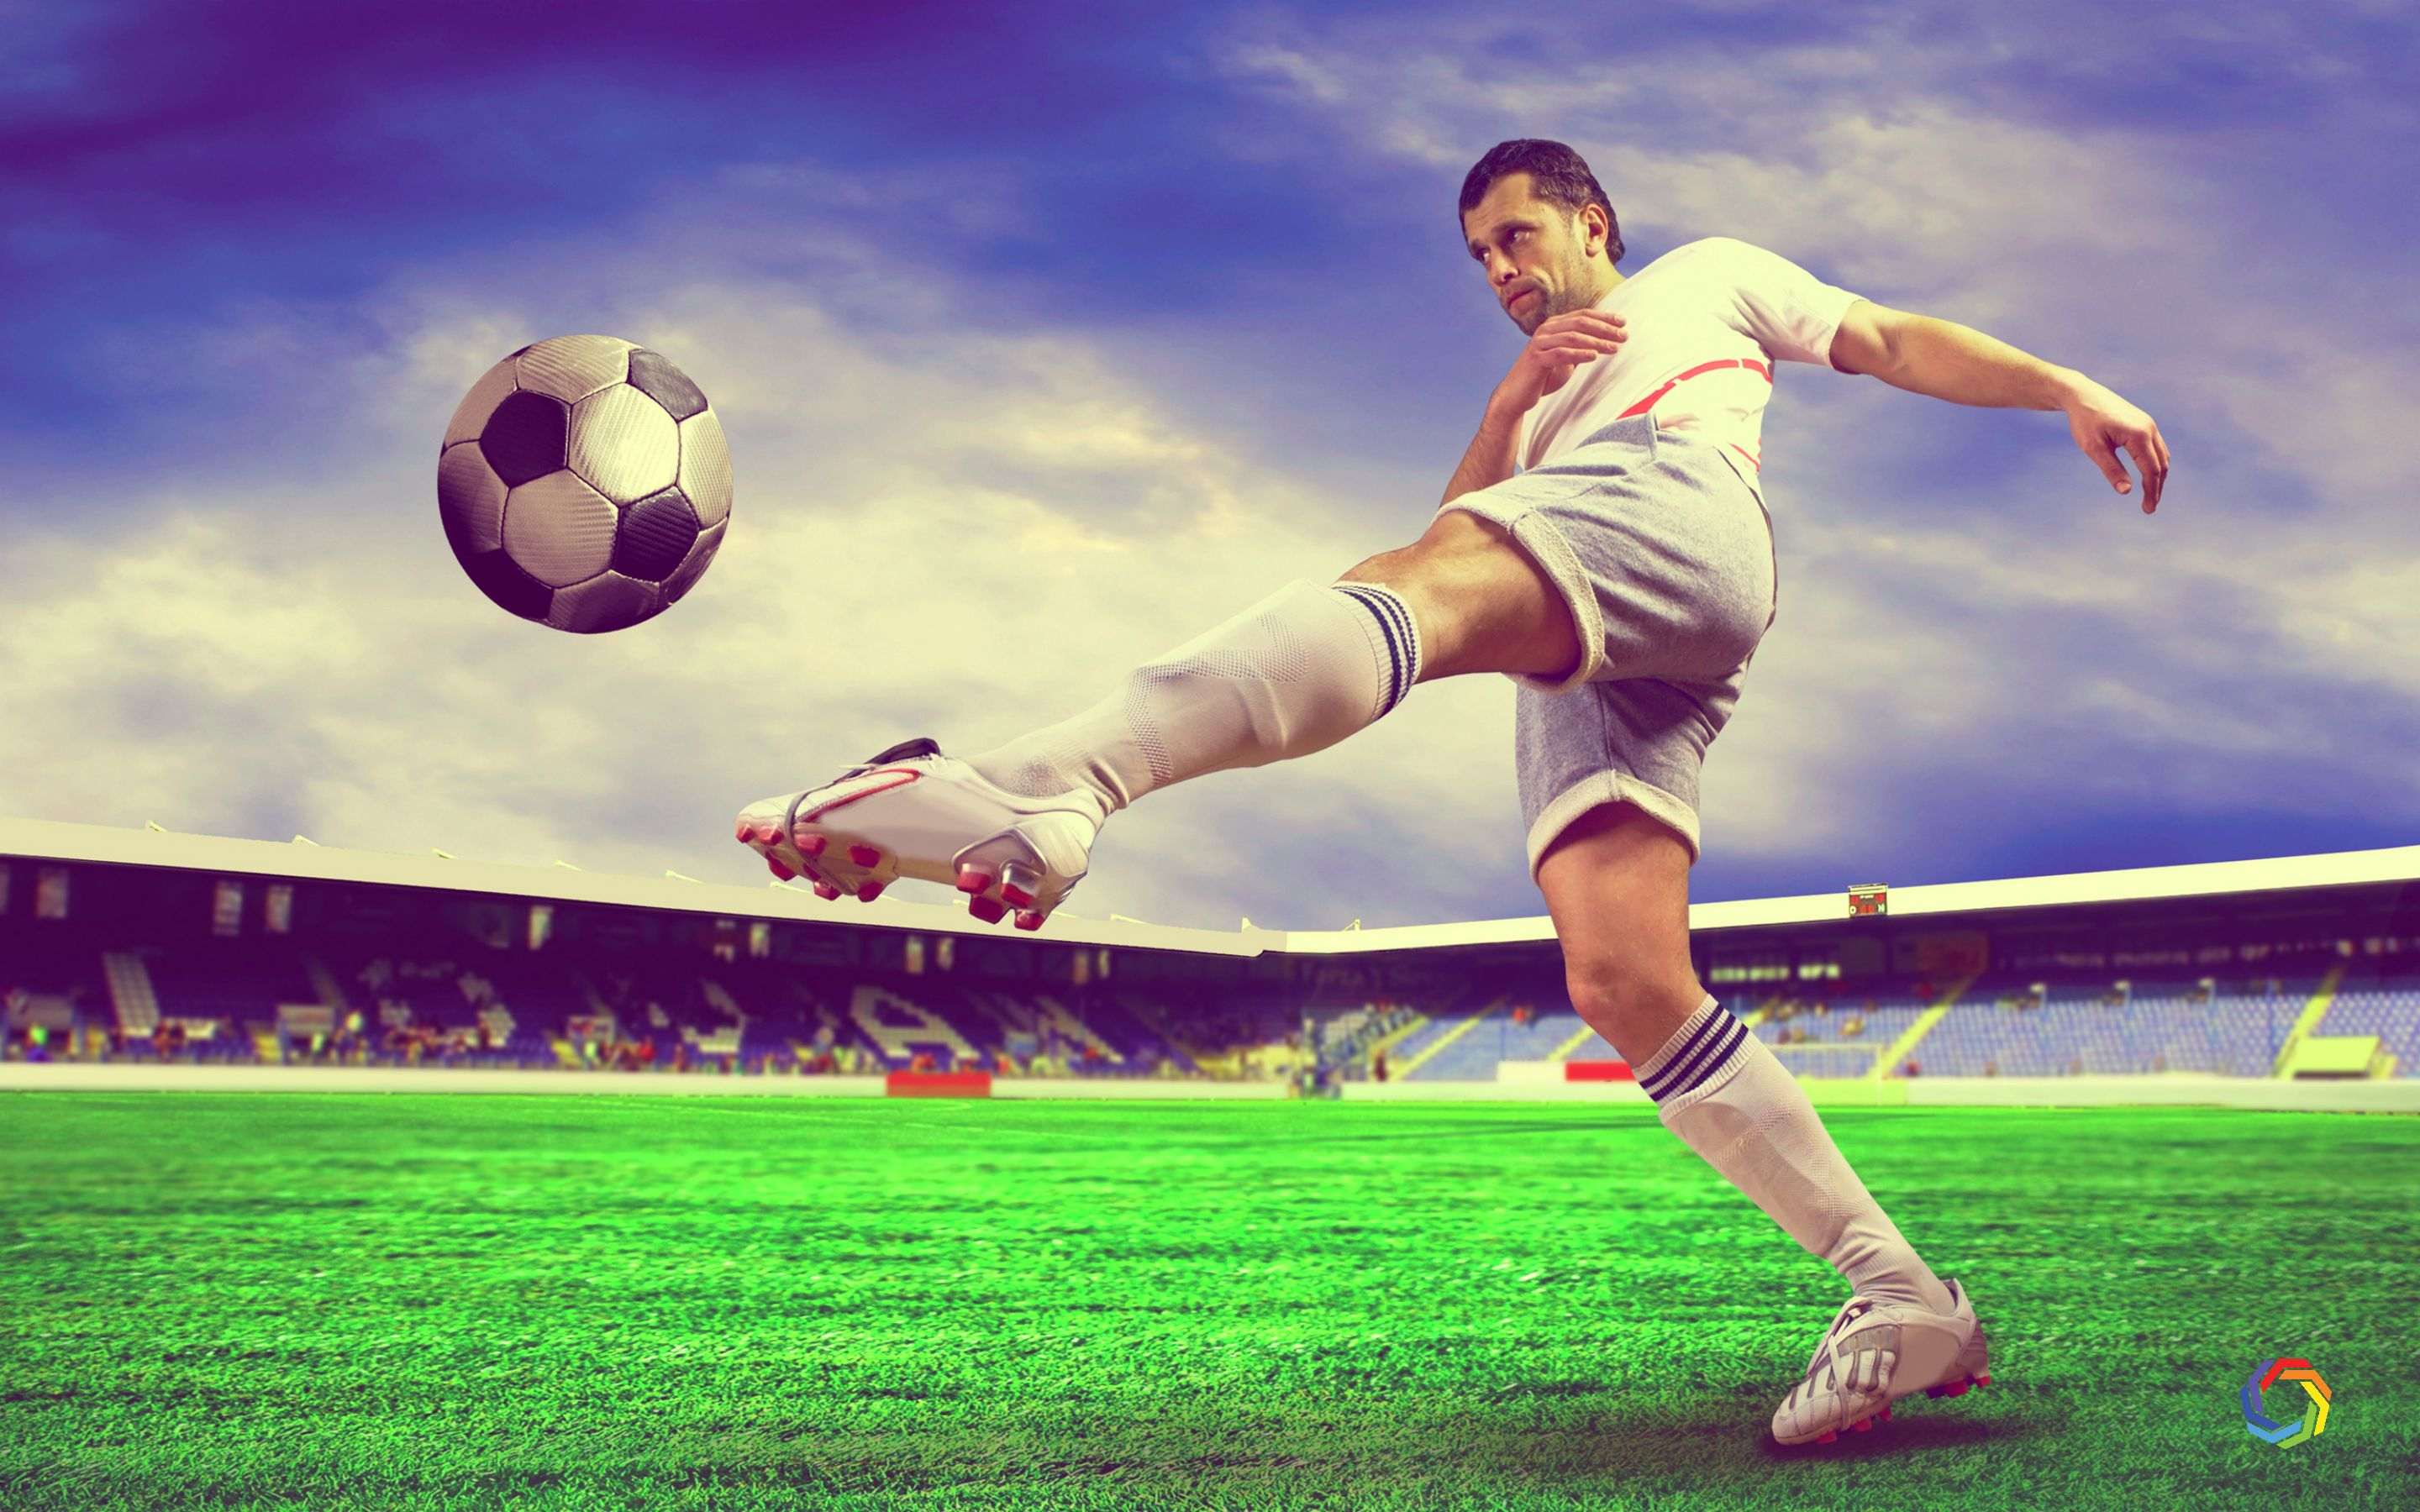 Just with sbobet you will get a good foundation for your personal bets